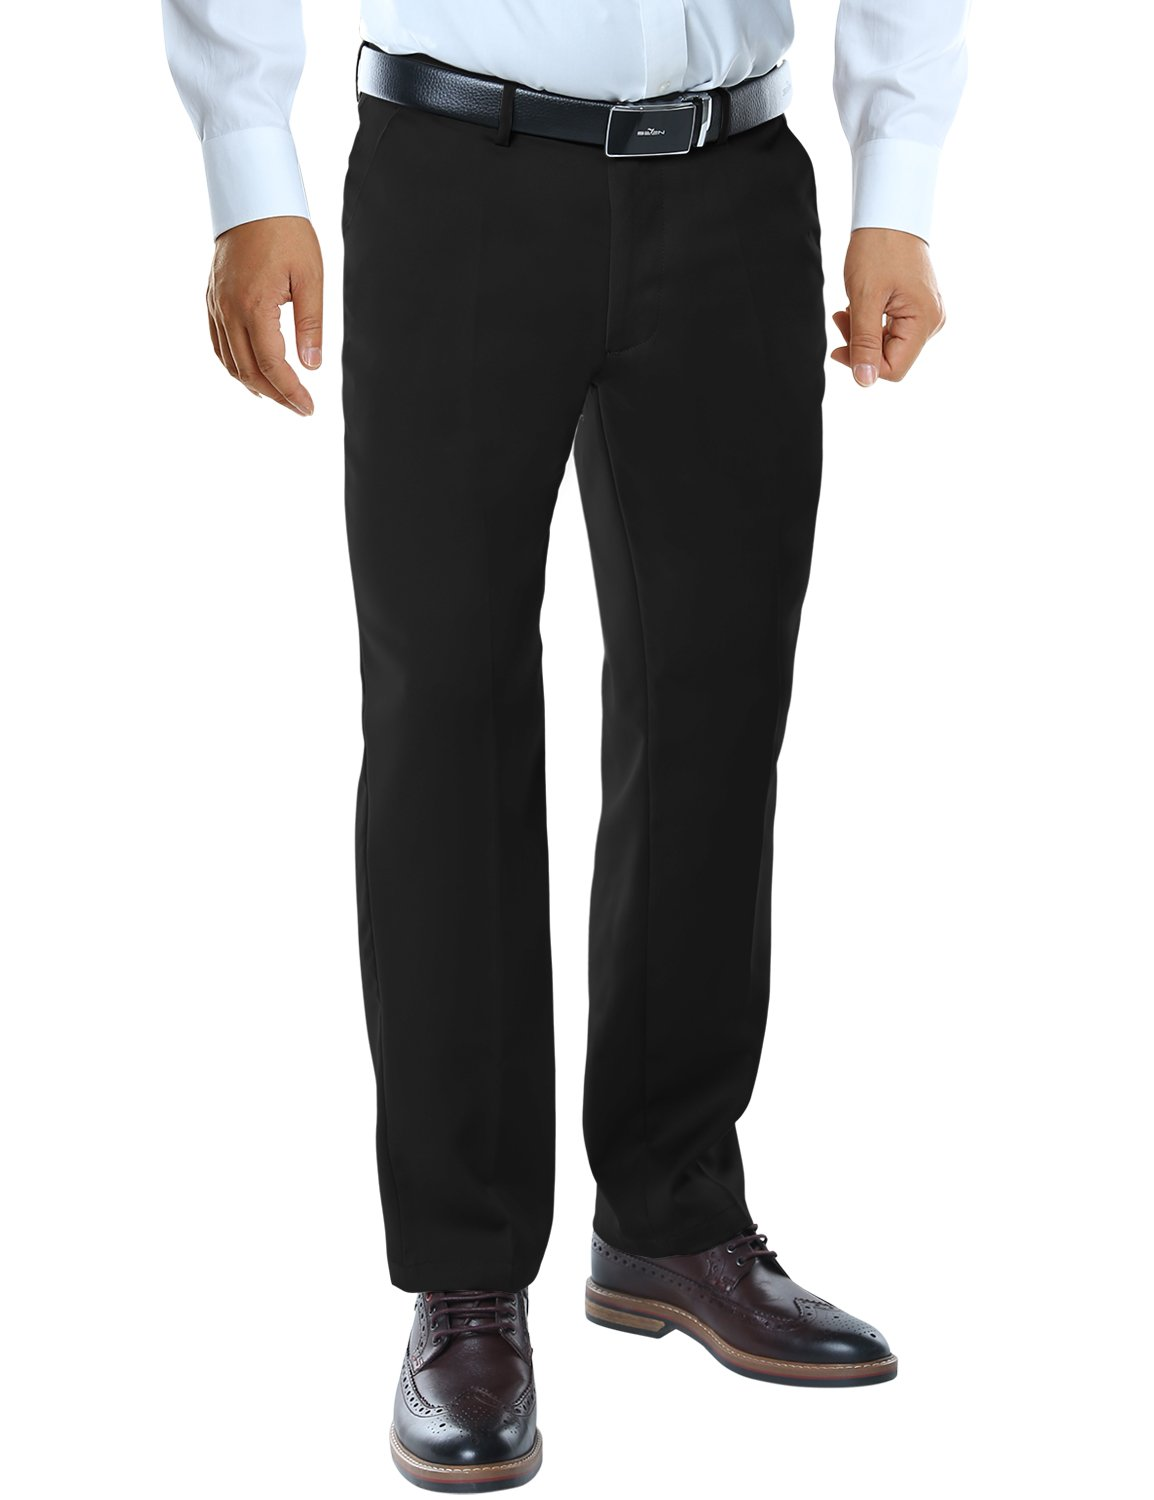 Match Mens Straight Fit No-Iron Plain Front Dress Pants M2(32W x 32L, 8088 Black)